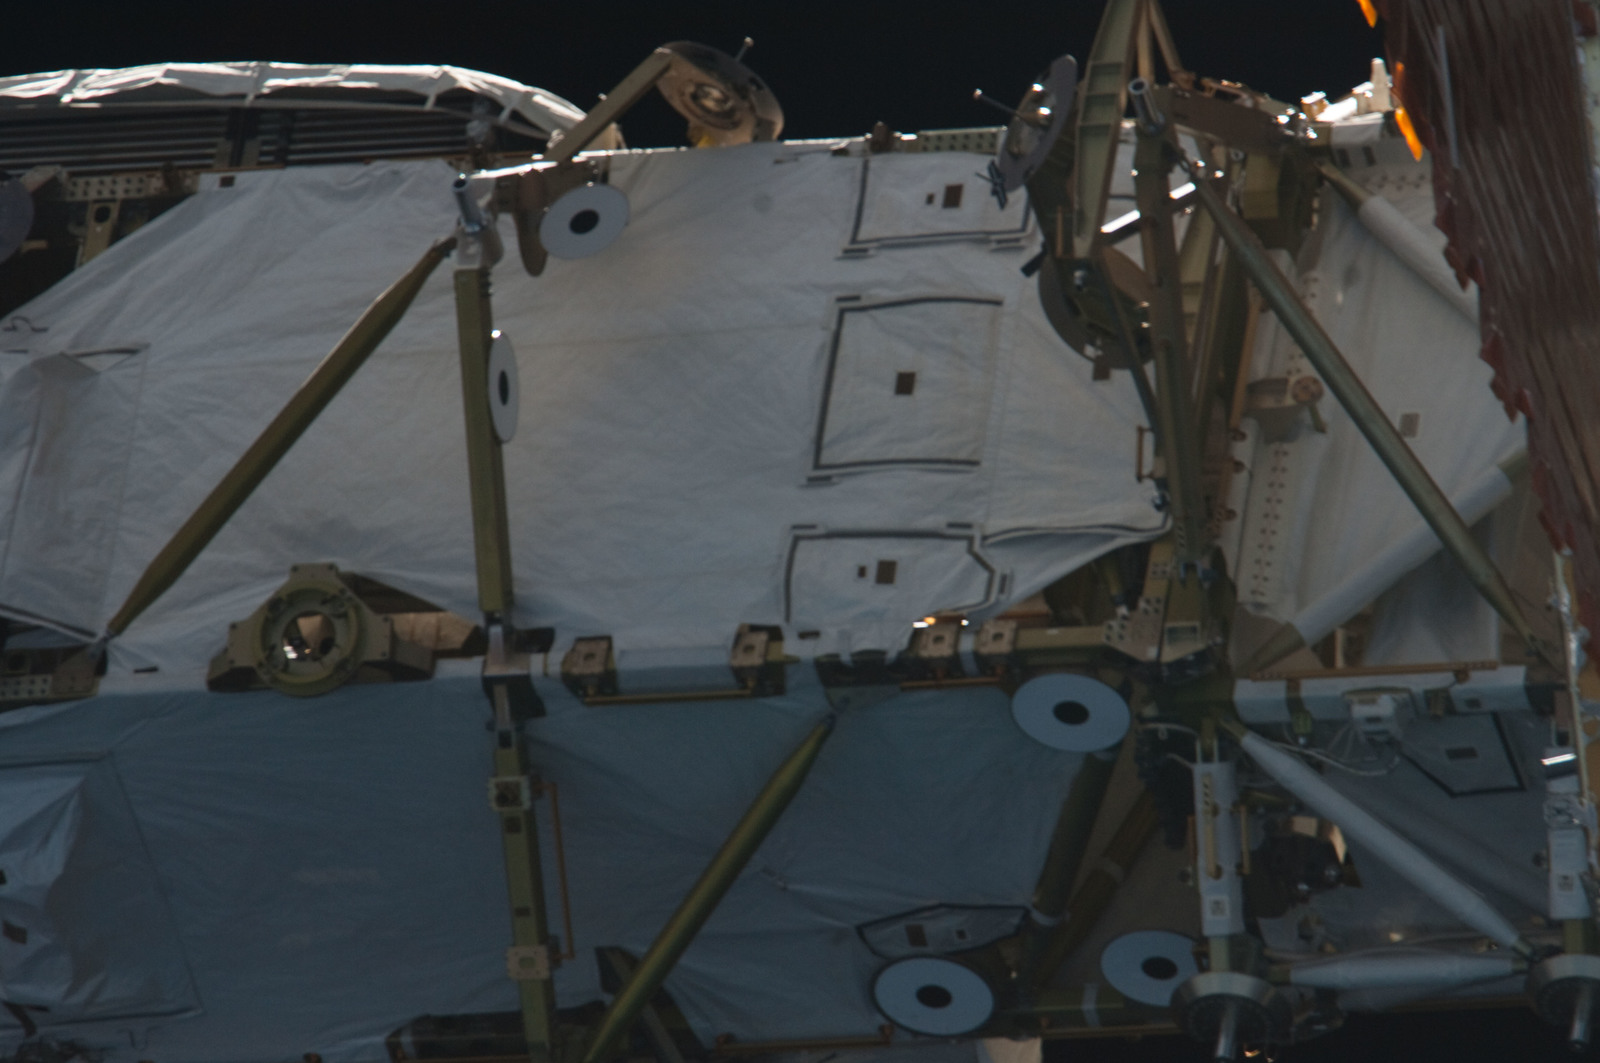 S134E011381 - STS-134 - Close-up view of Port Side Truss Segments